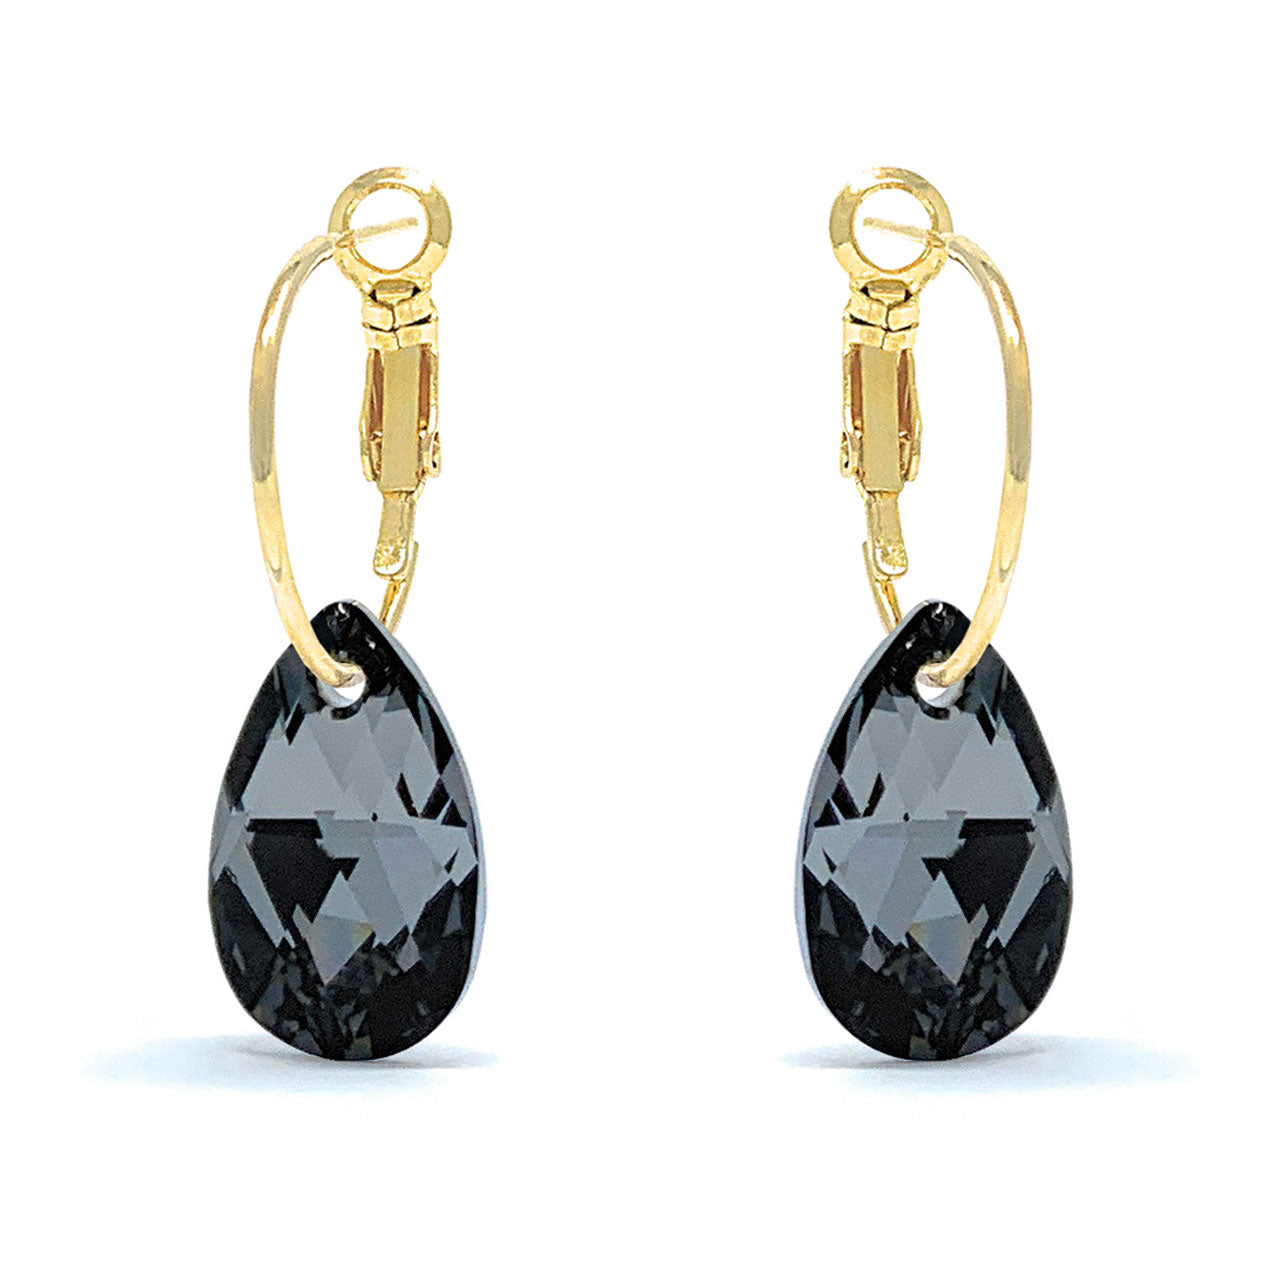 Aurora Small Drop Earrings with Black Grey Silver Night Pear Crystals from Swarovski Gold Plated - Ed Heart